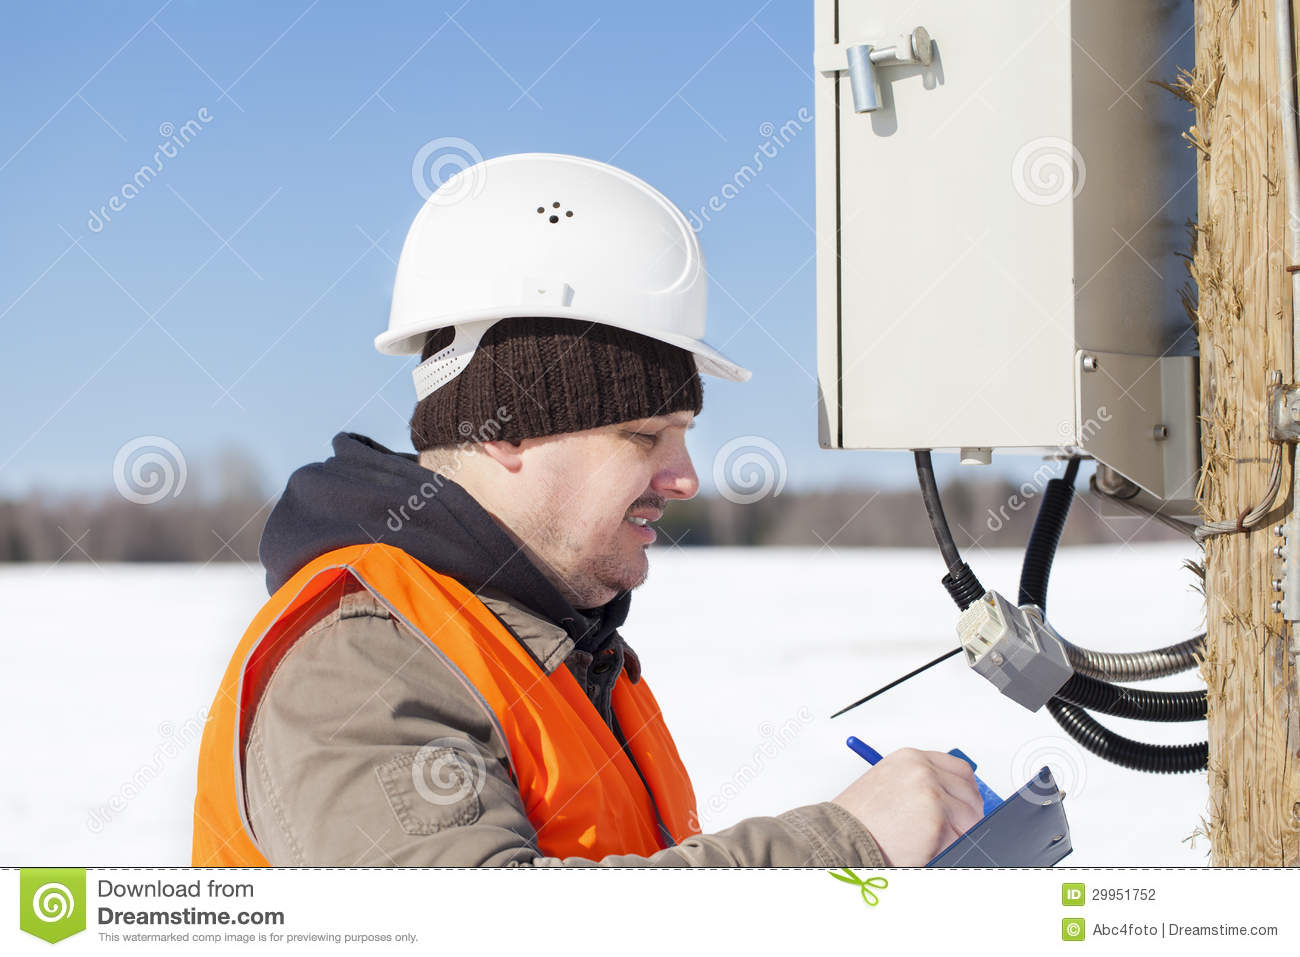 Electrical Engineer Stock Photo Image Of Plan Jacket 29951752 Installation Quality Download